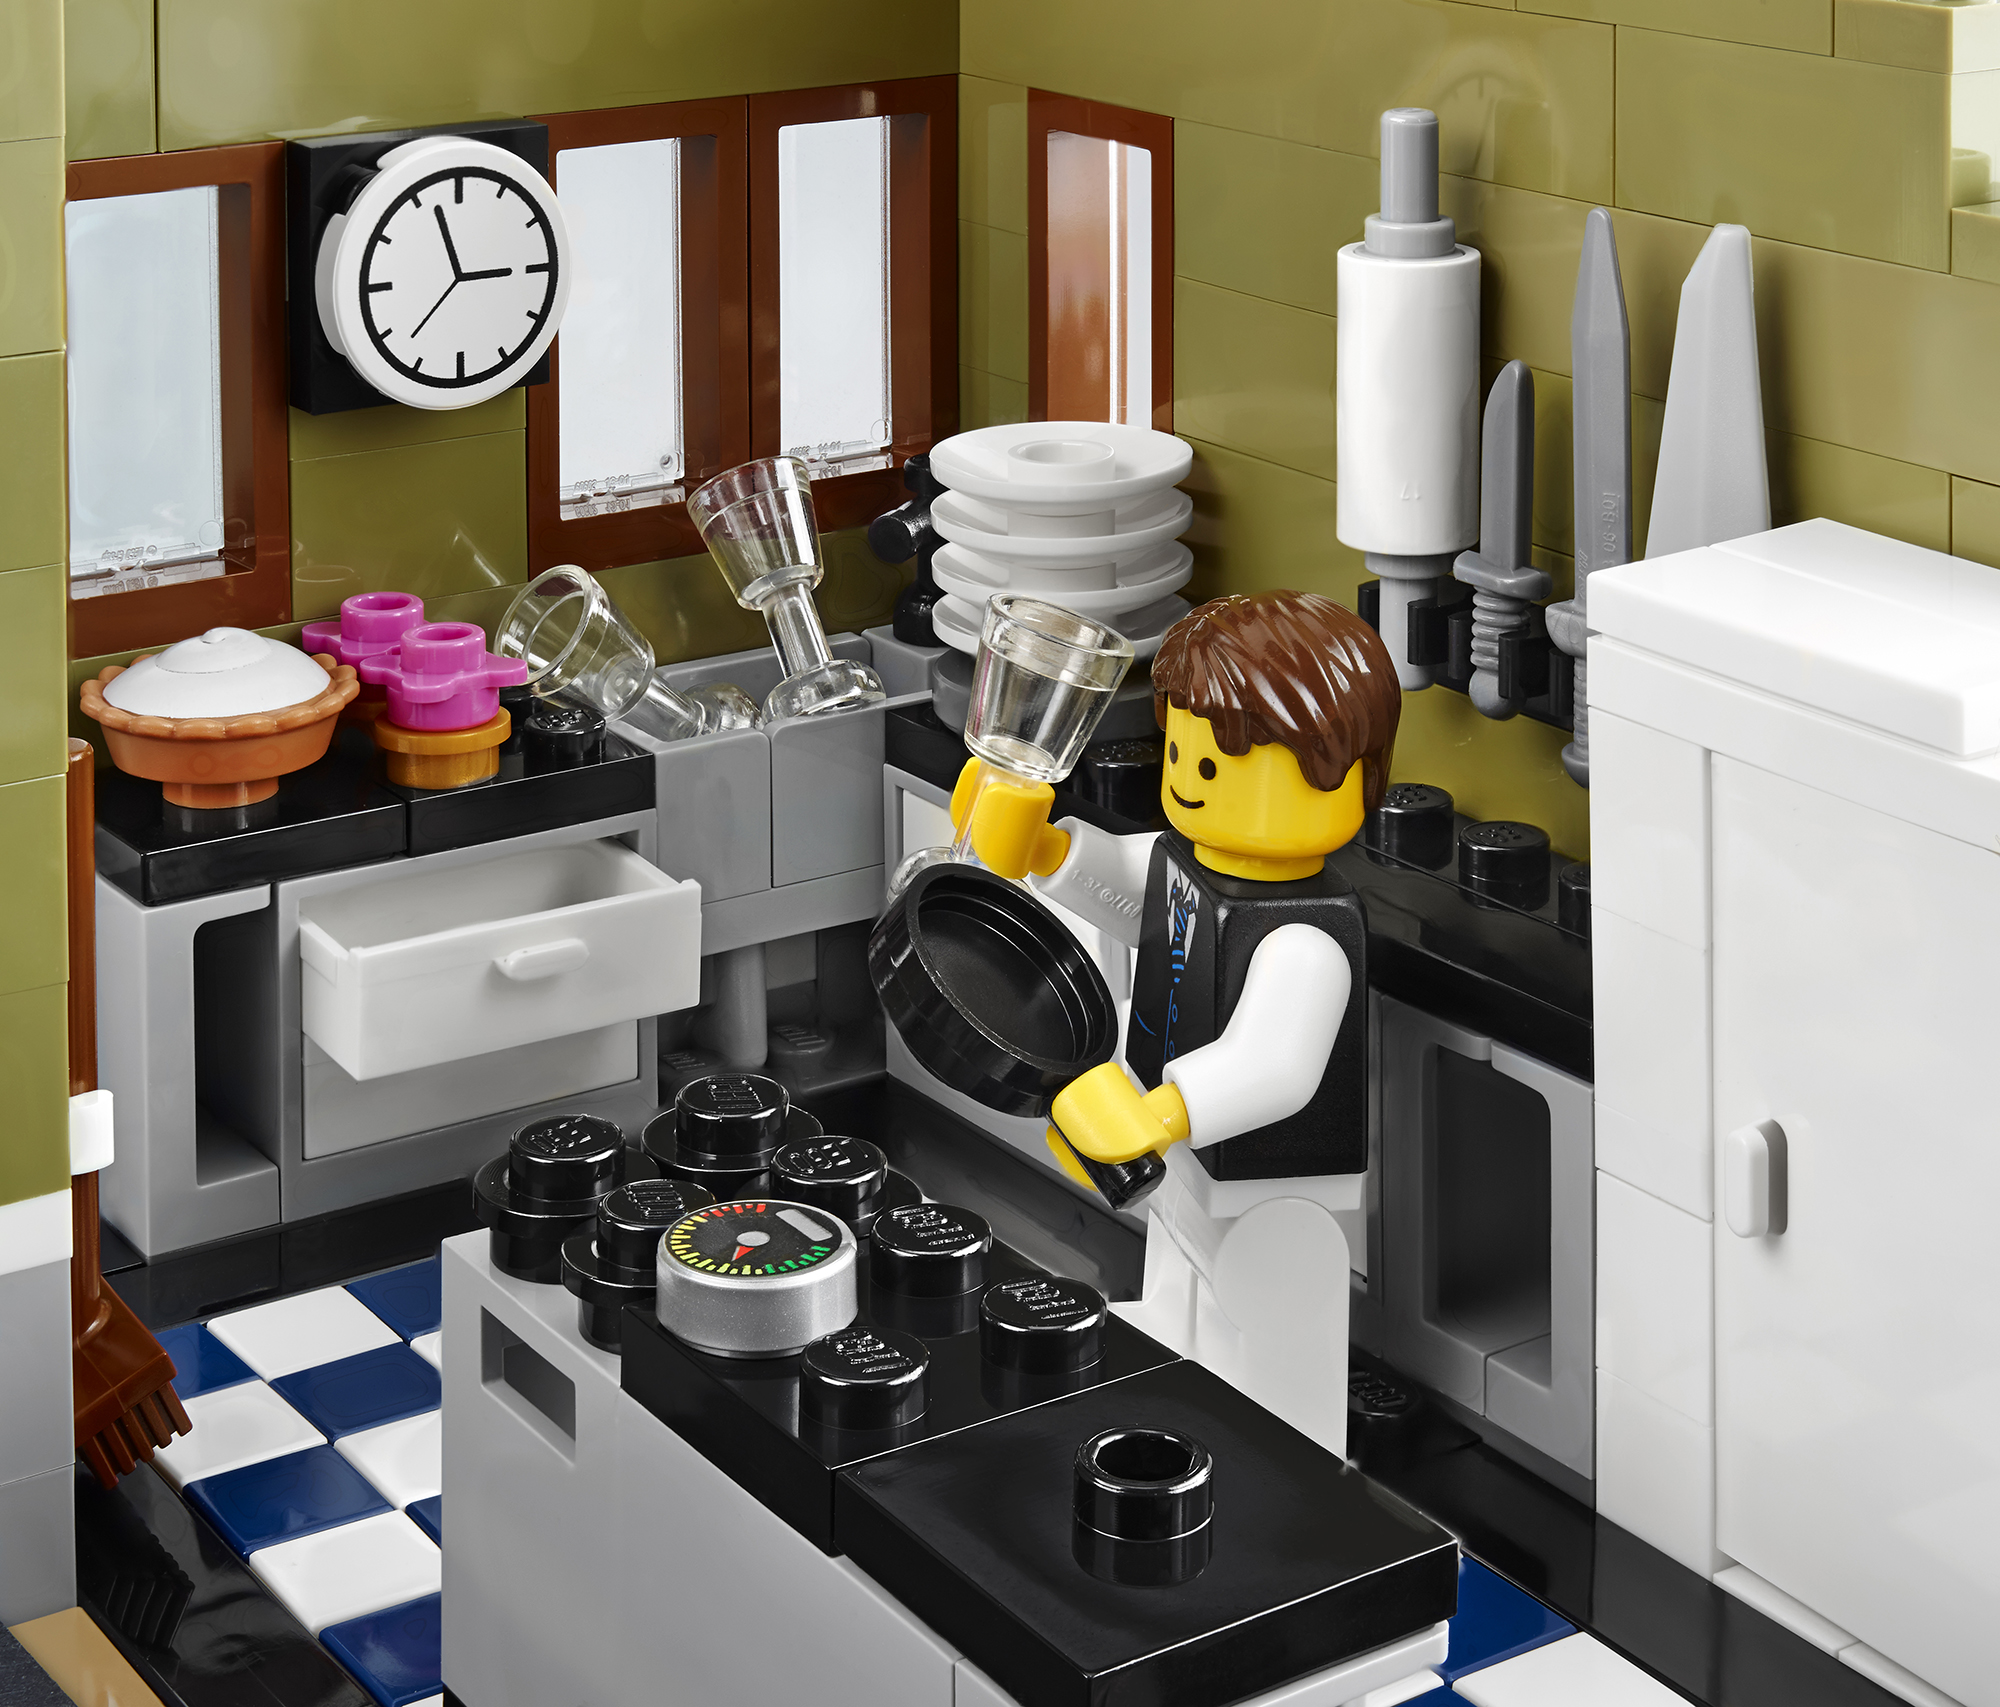 2014 lego parisian restaurant 10243 modular building photo for Kitchen set up for restaurant